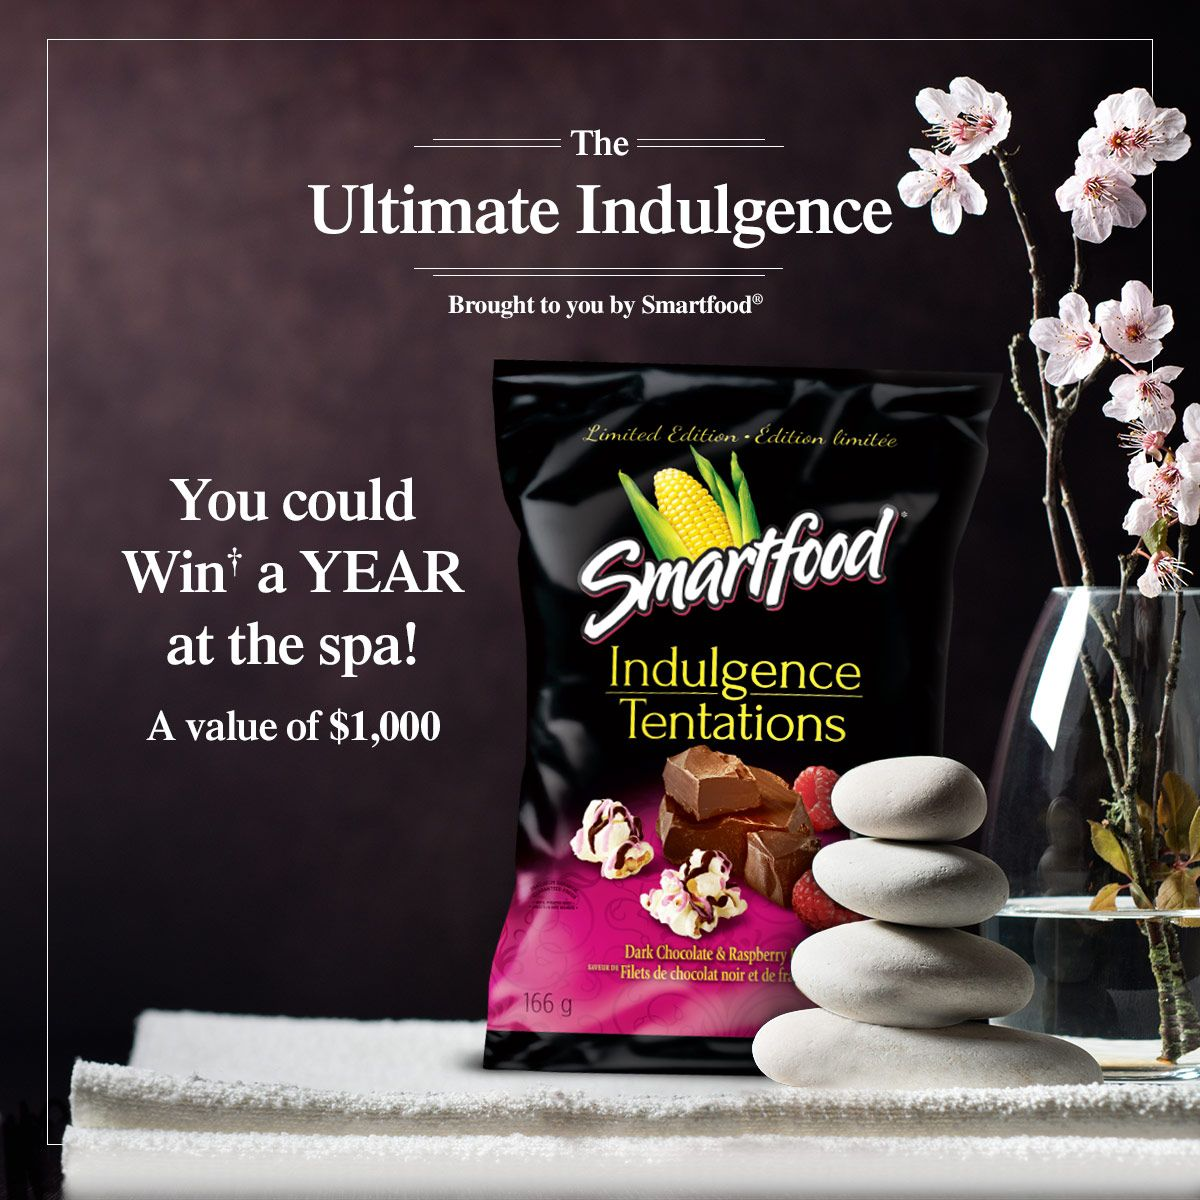 The Ultimate Indulgence Contest Enter Now! Spa gift